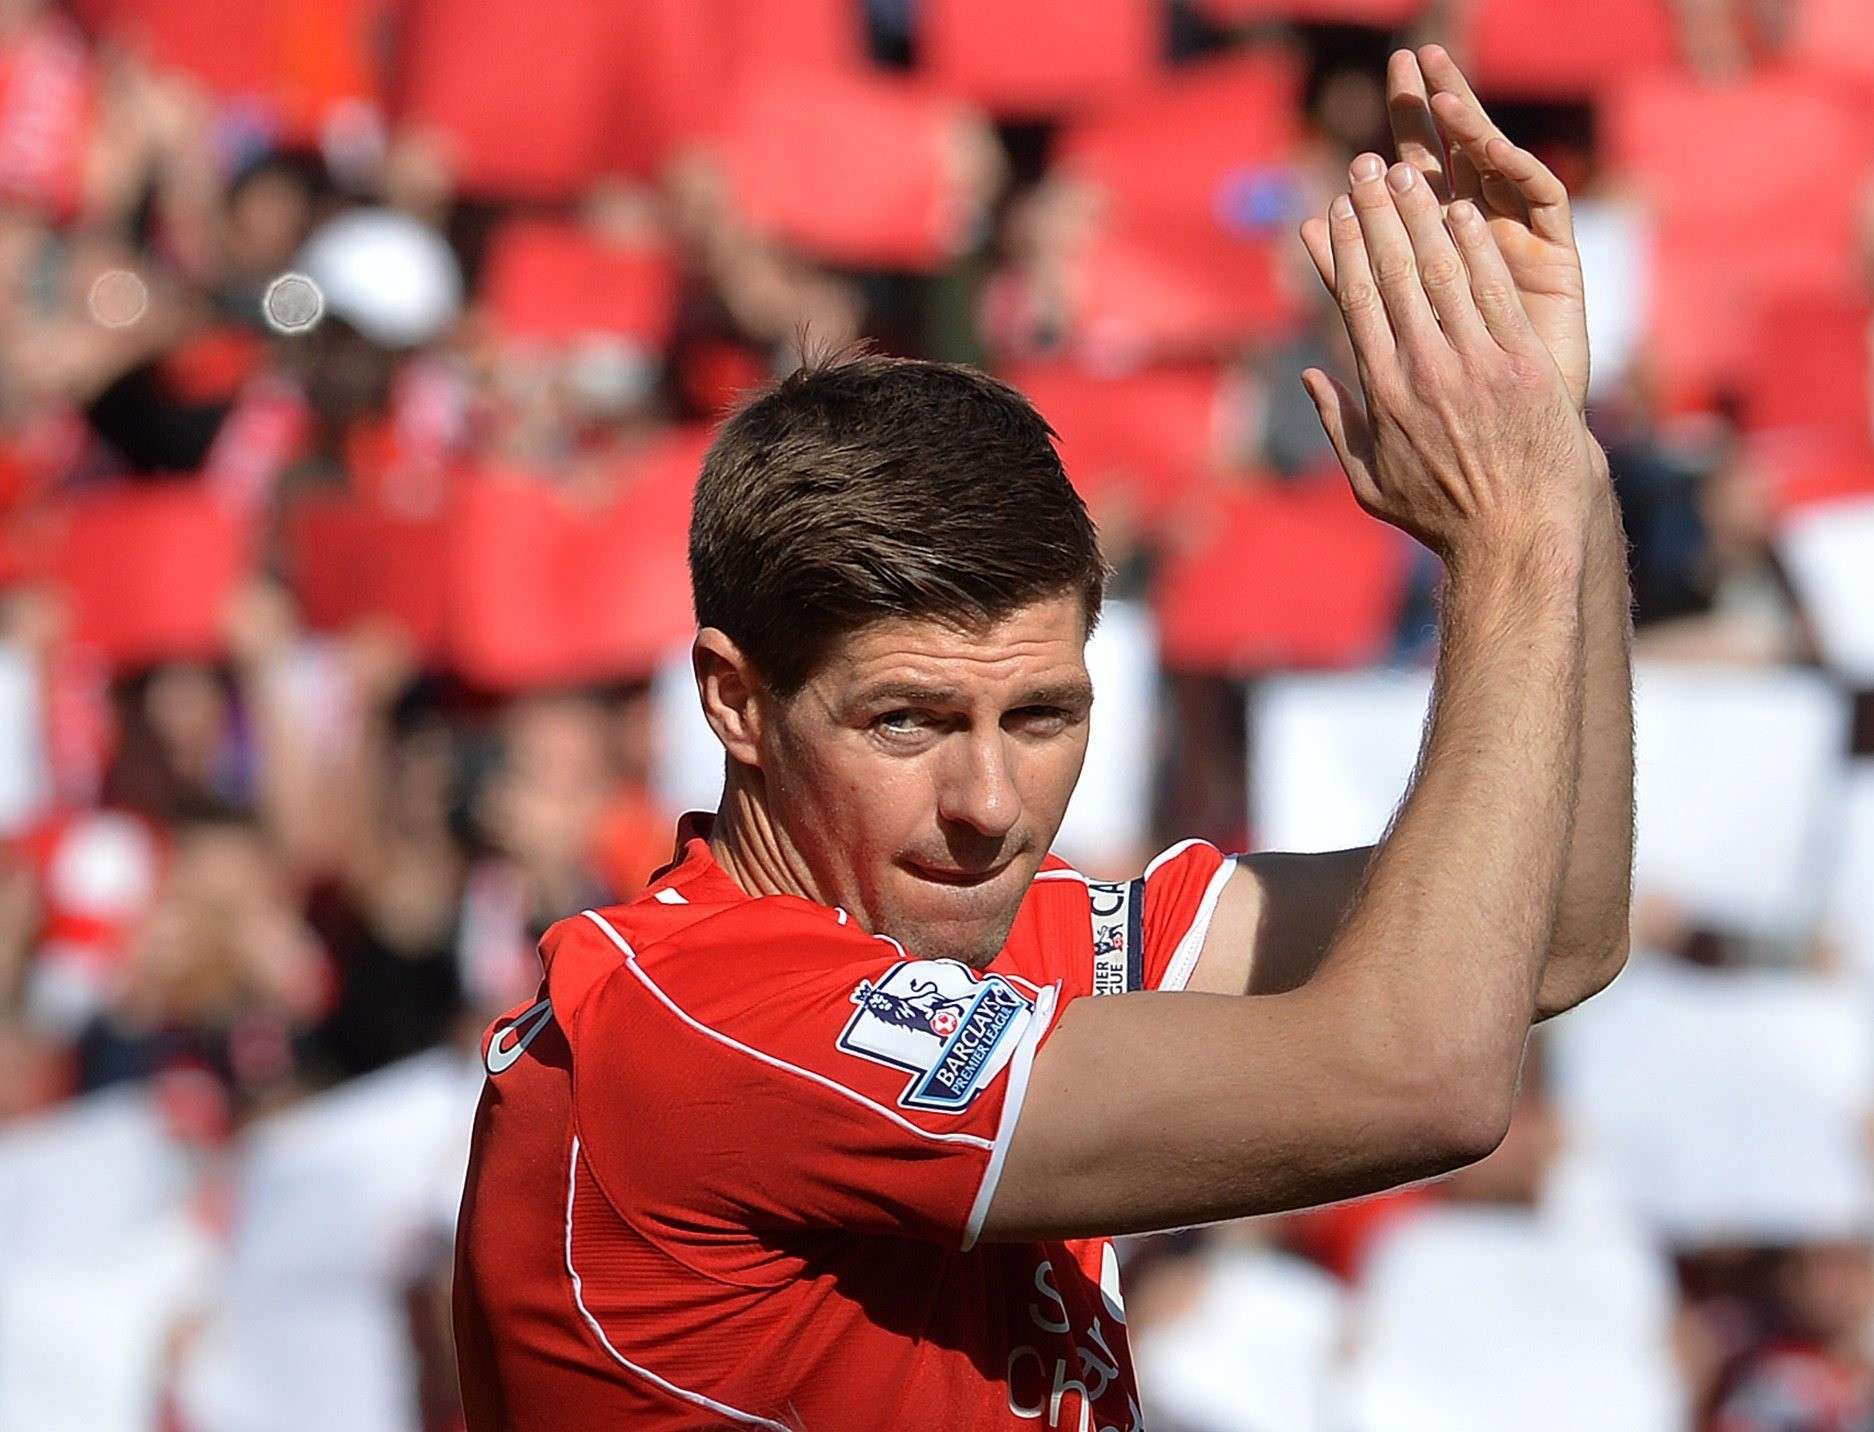 A file picture of Liverpool's Steven Gerrard applauding fans during the English Premier League soccer match between Liverpool and Crystal Palace at the Anfield in Liverpool, Britain, 16 April 2015. (EPA Photo)